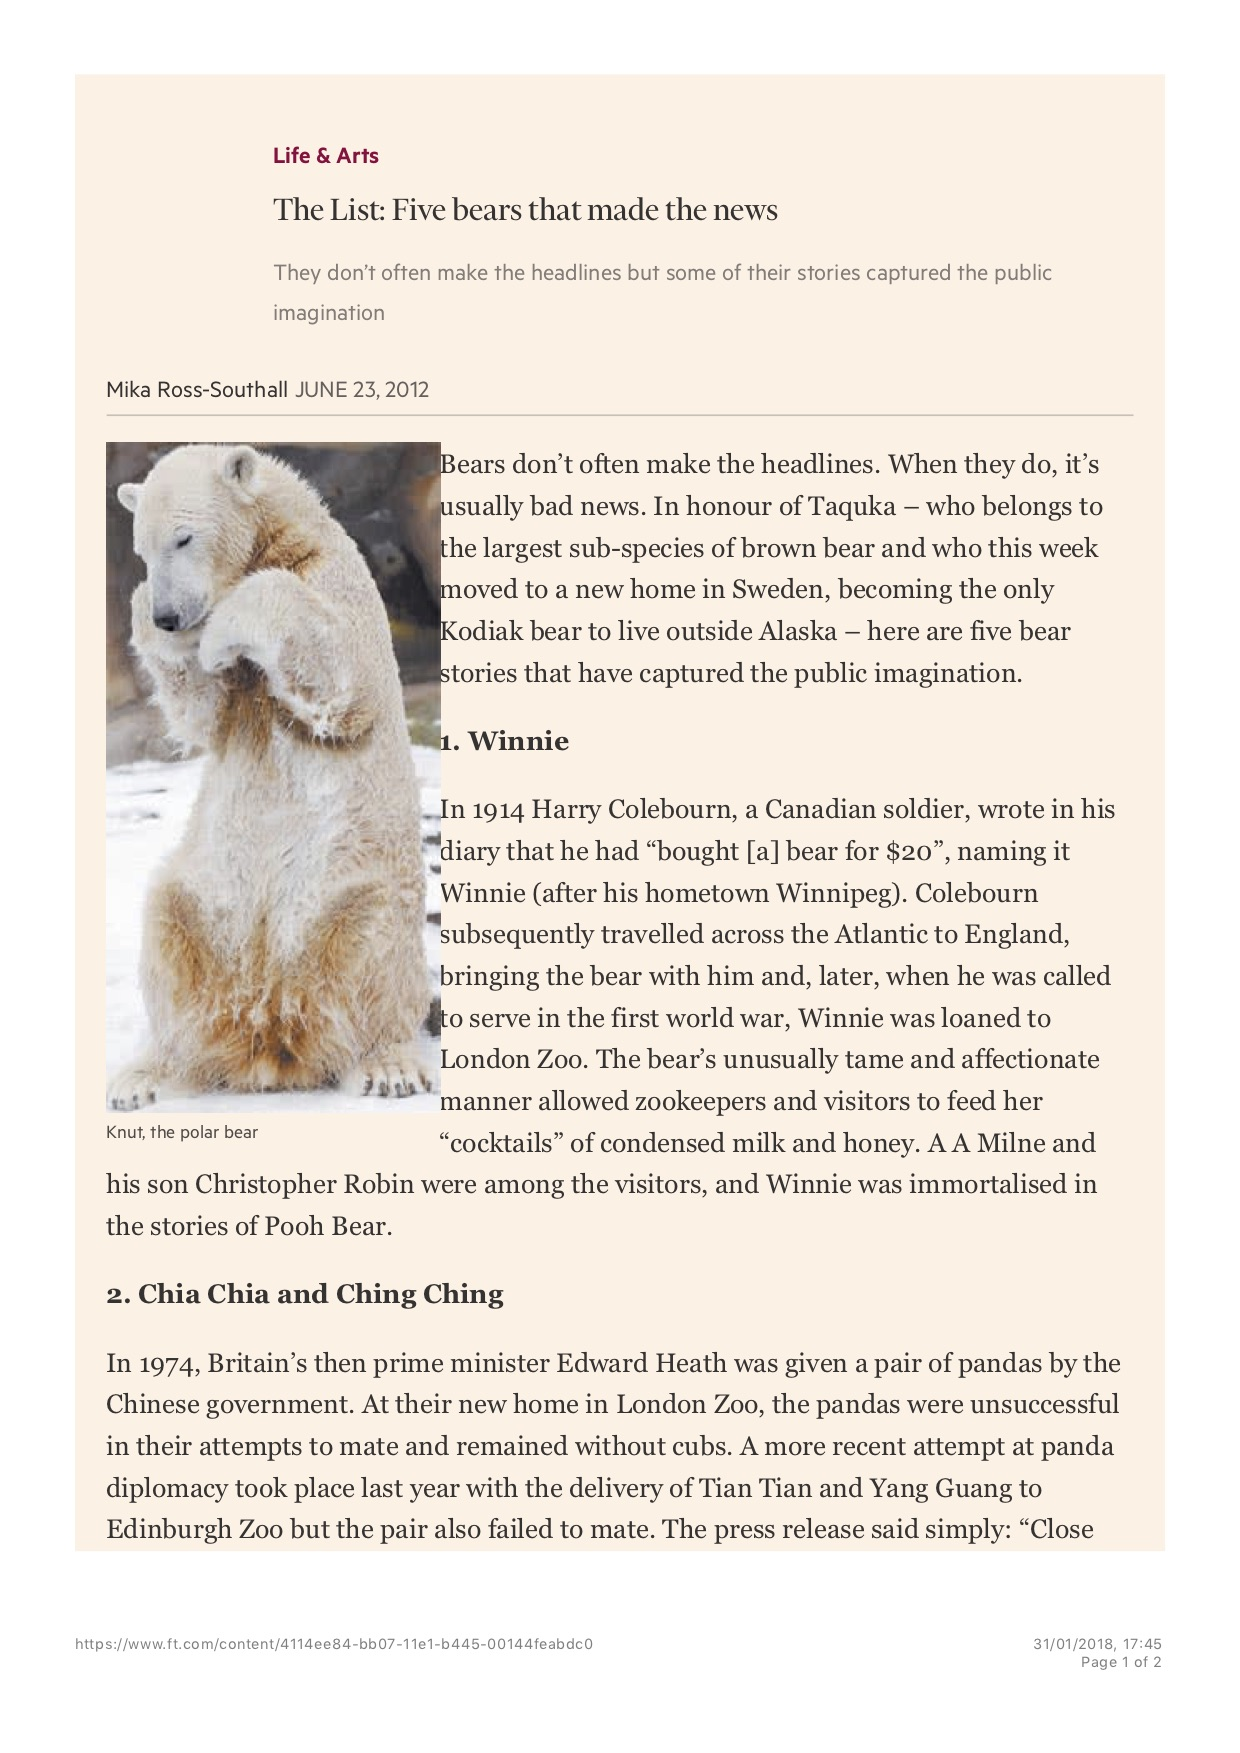 The List: Five bears that made the news, Published in the Financial Times Weekend Life & Arts (print), 23 June 2012